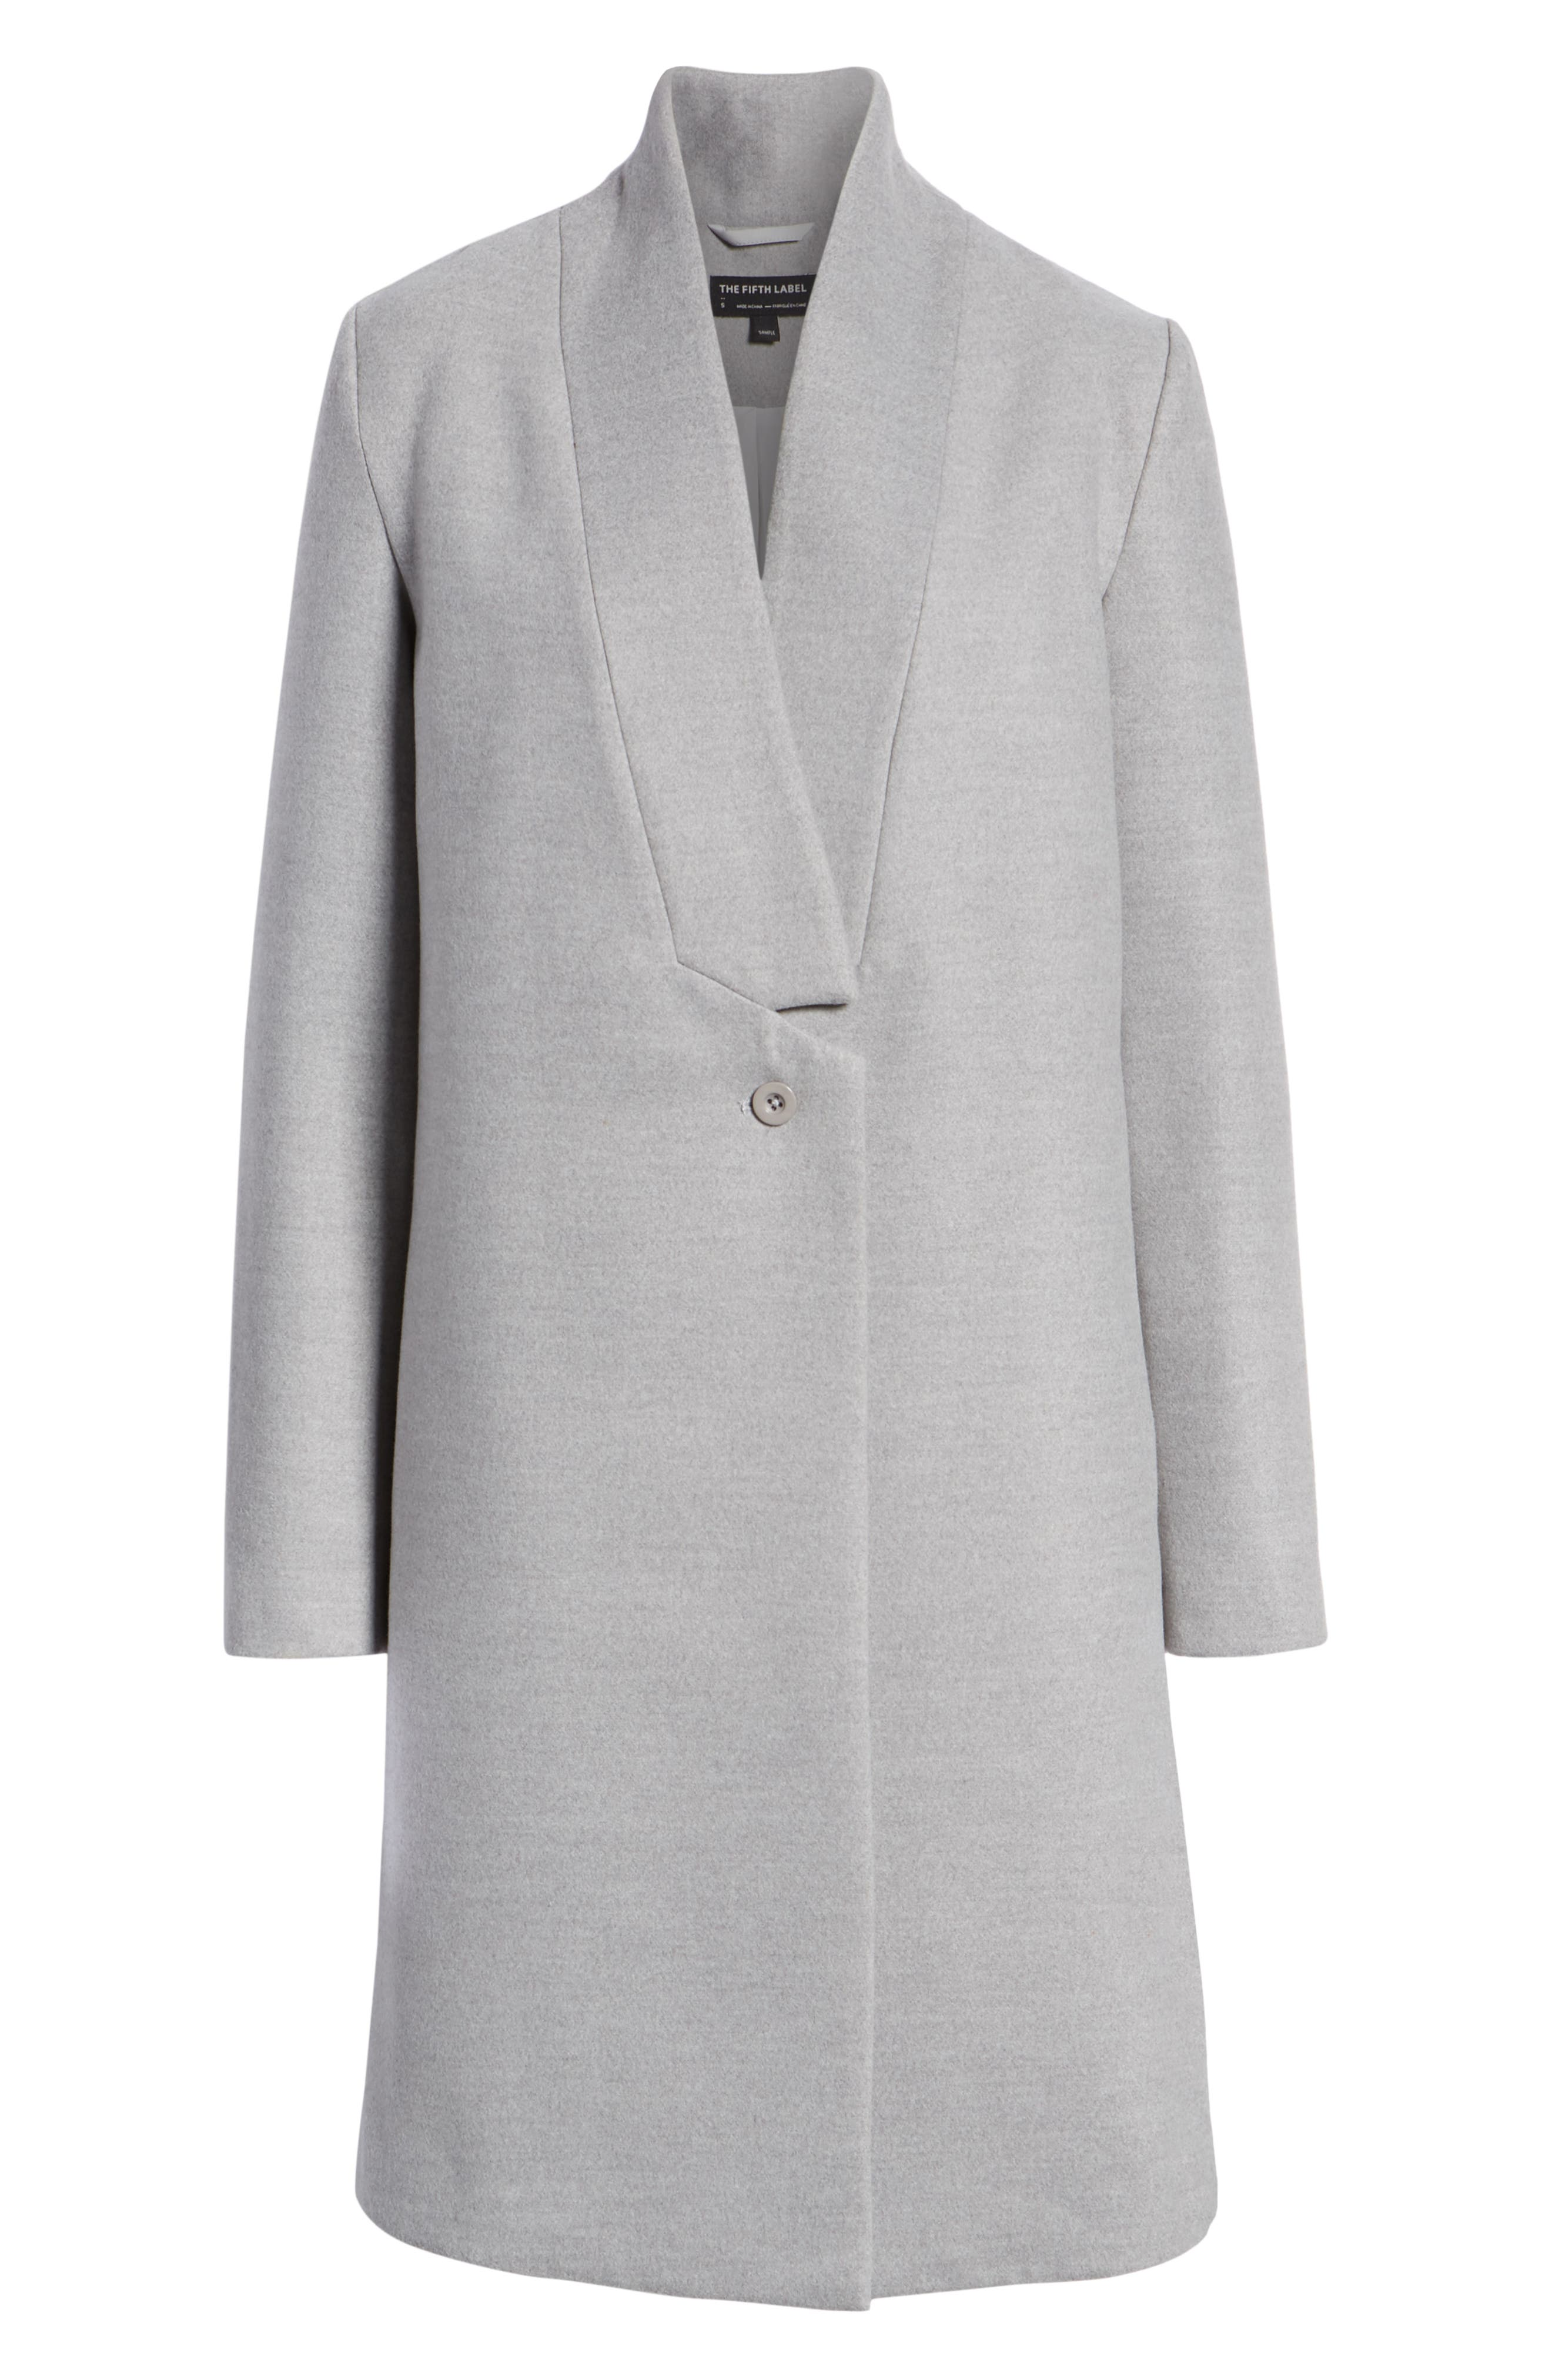 Seminar Coat,                             Alternate thumbnail 6, color,                             GREY MARLE